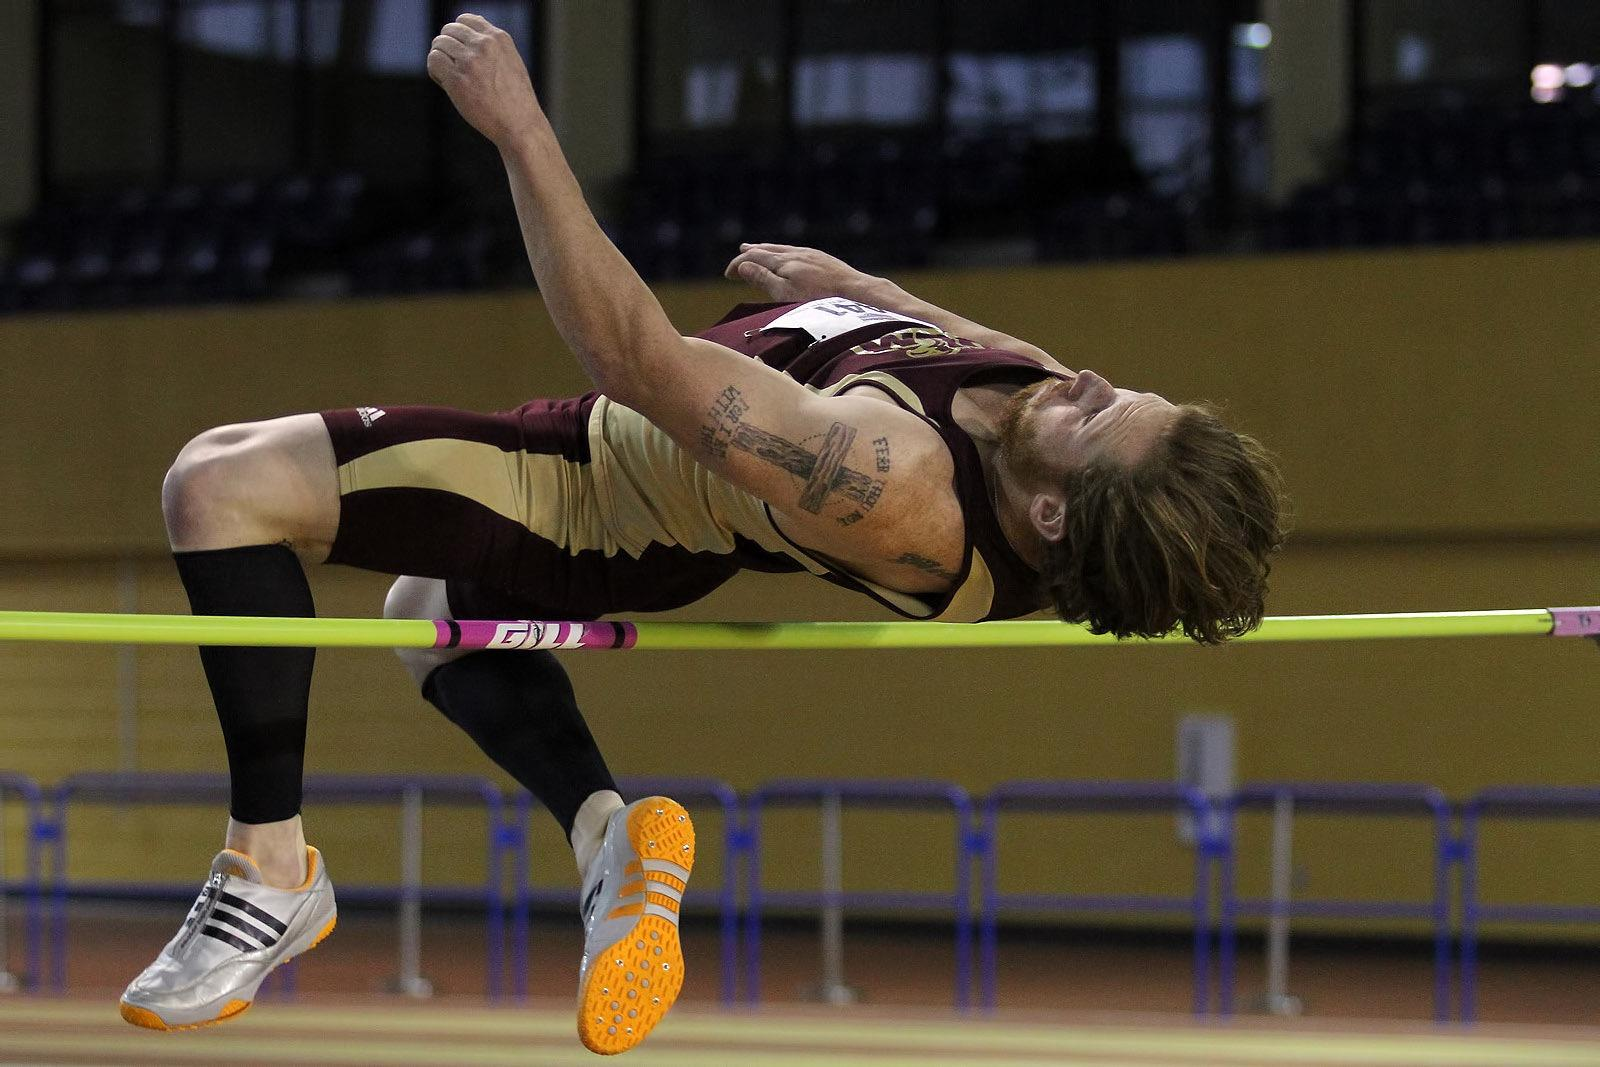 February 22, 2016:  Day one of the Sunbelt 2016 Indoor Track & Field Championship